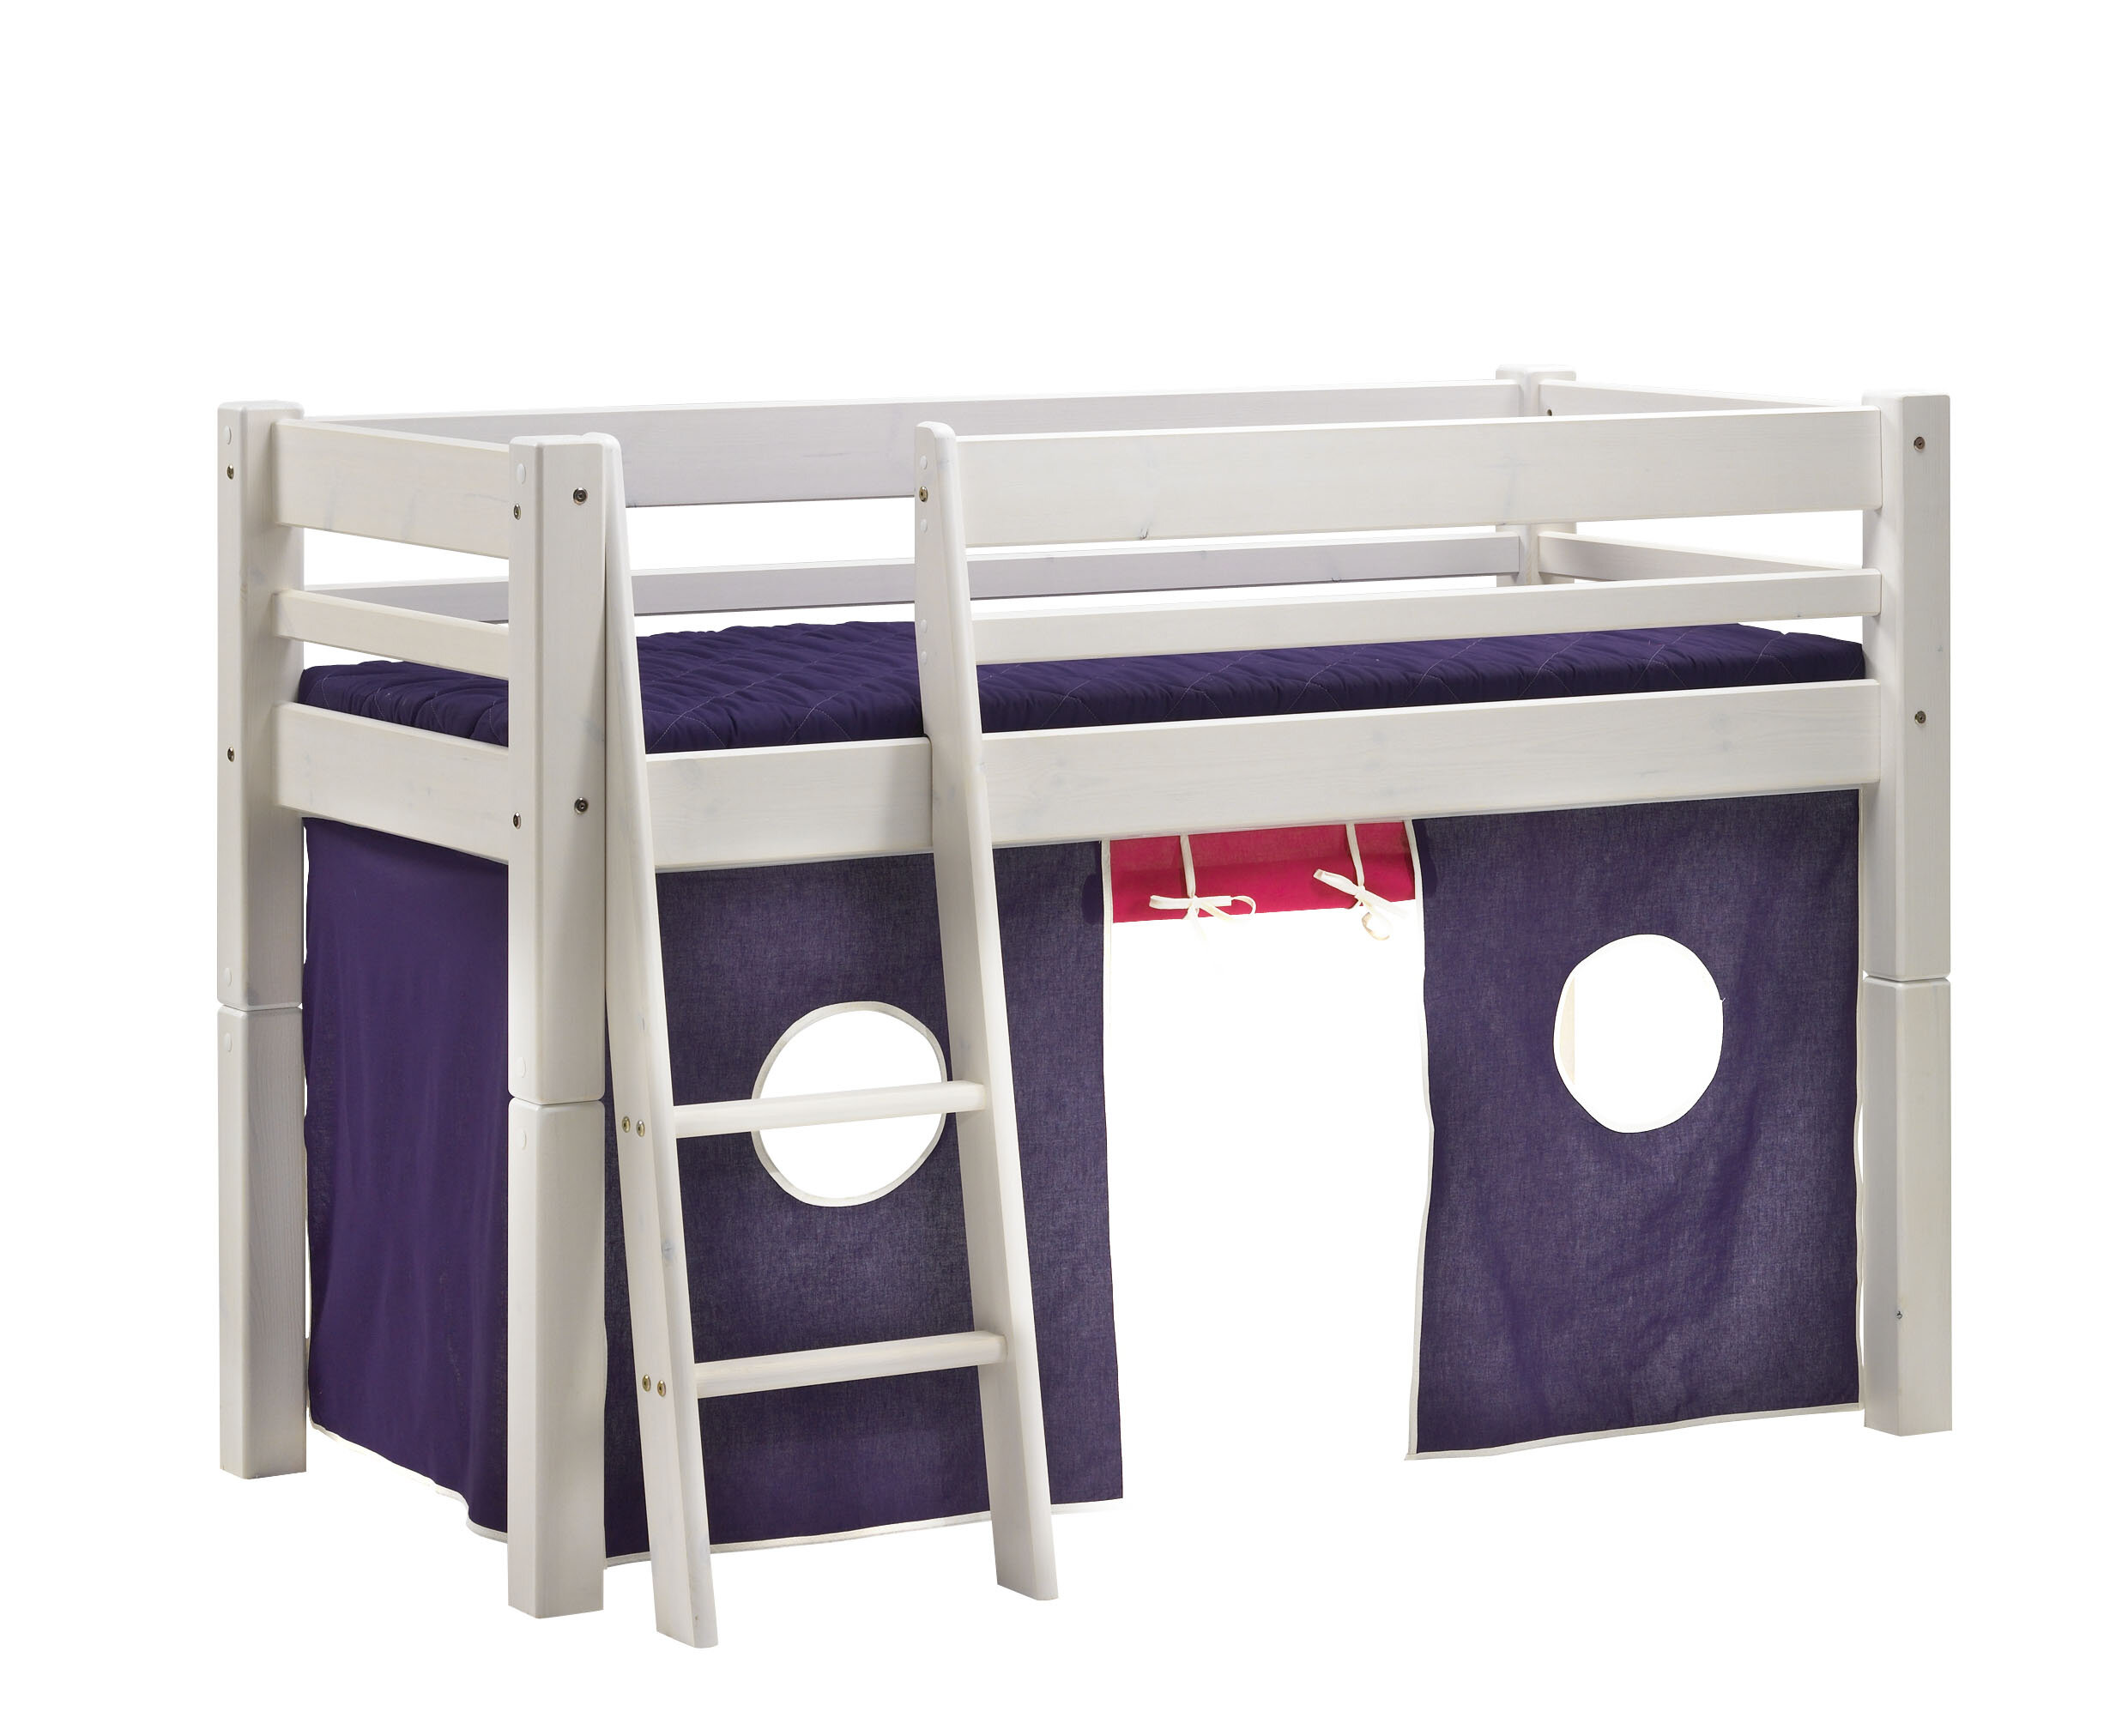 Etagenbett Wayfair : Scanliving hochbett mojo junior 70 x 160 cm & bewertungen wayfair.de